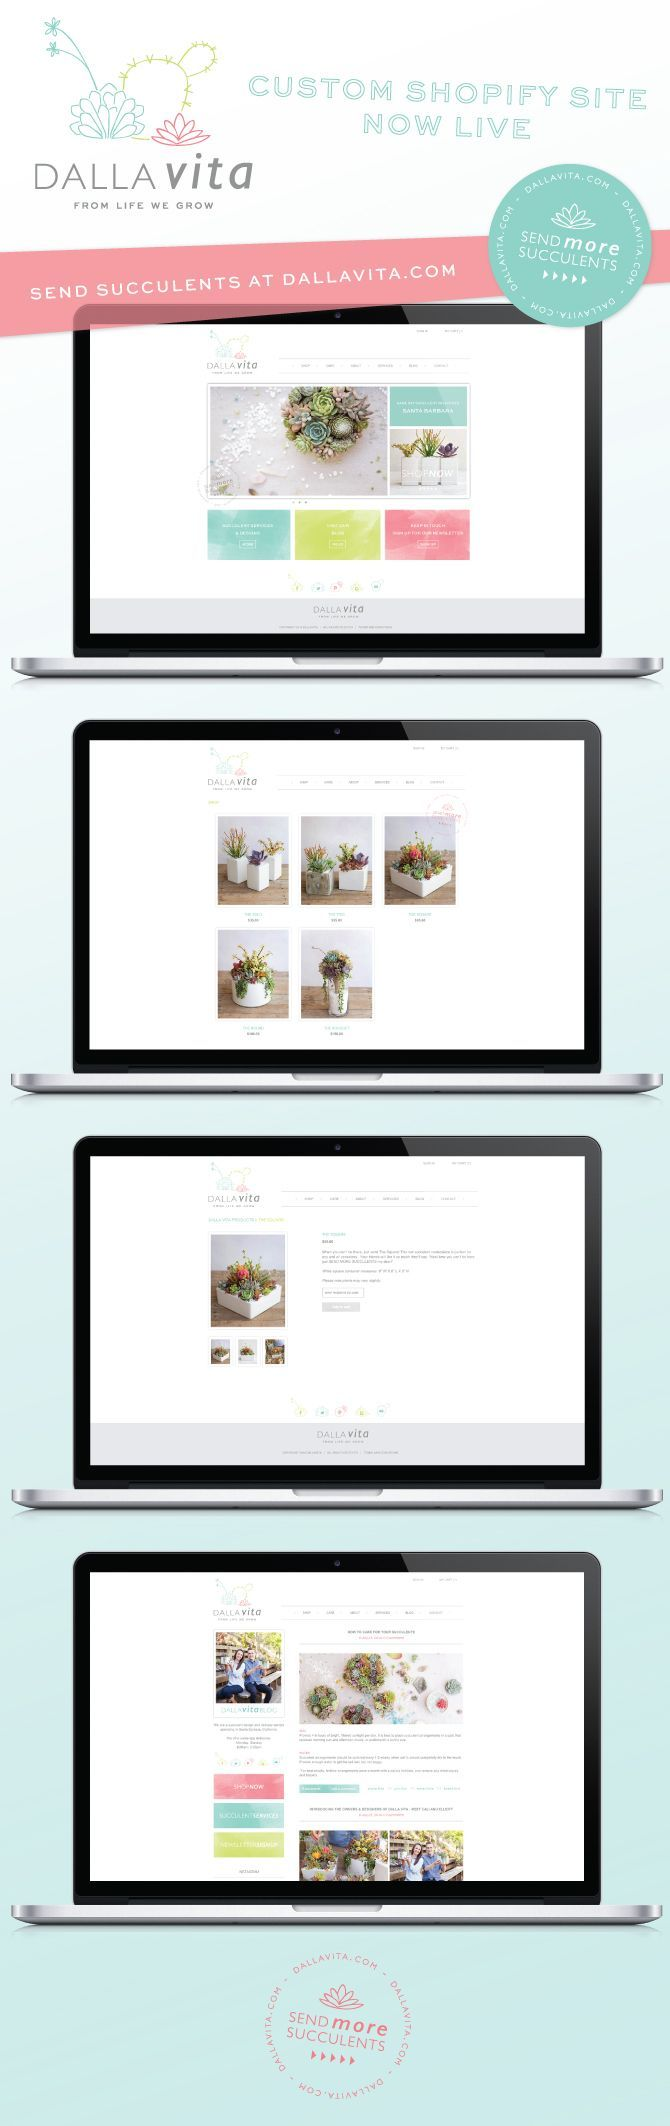 7 best Adobe Muse Widgets images on Pinterest | Adobe muse, Muse ...